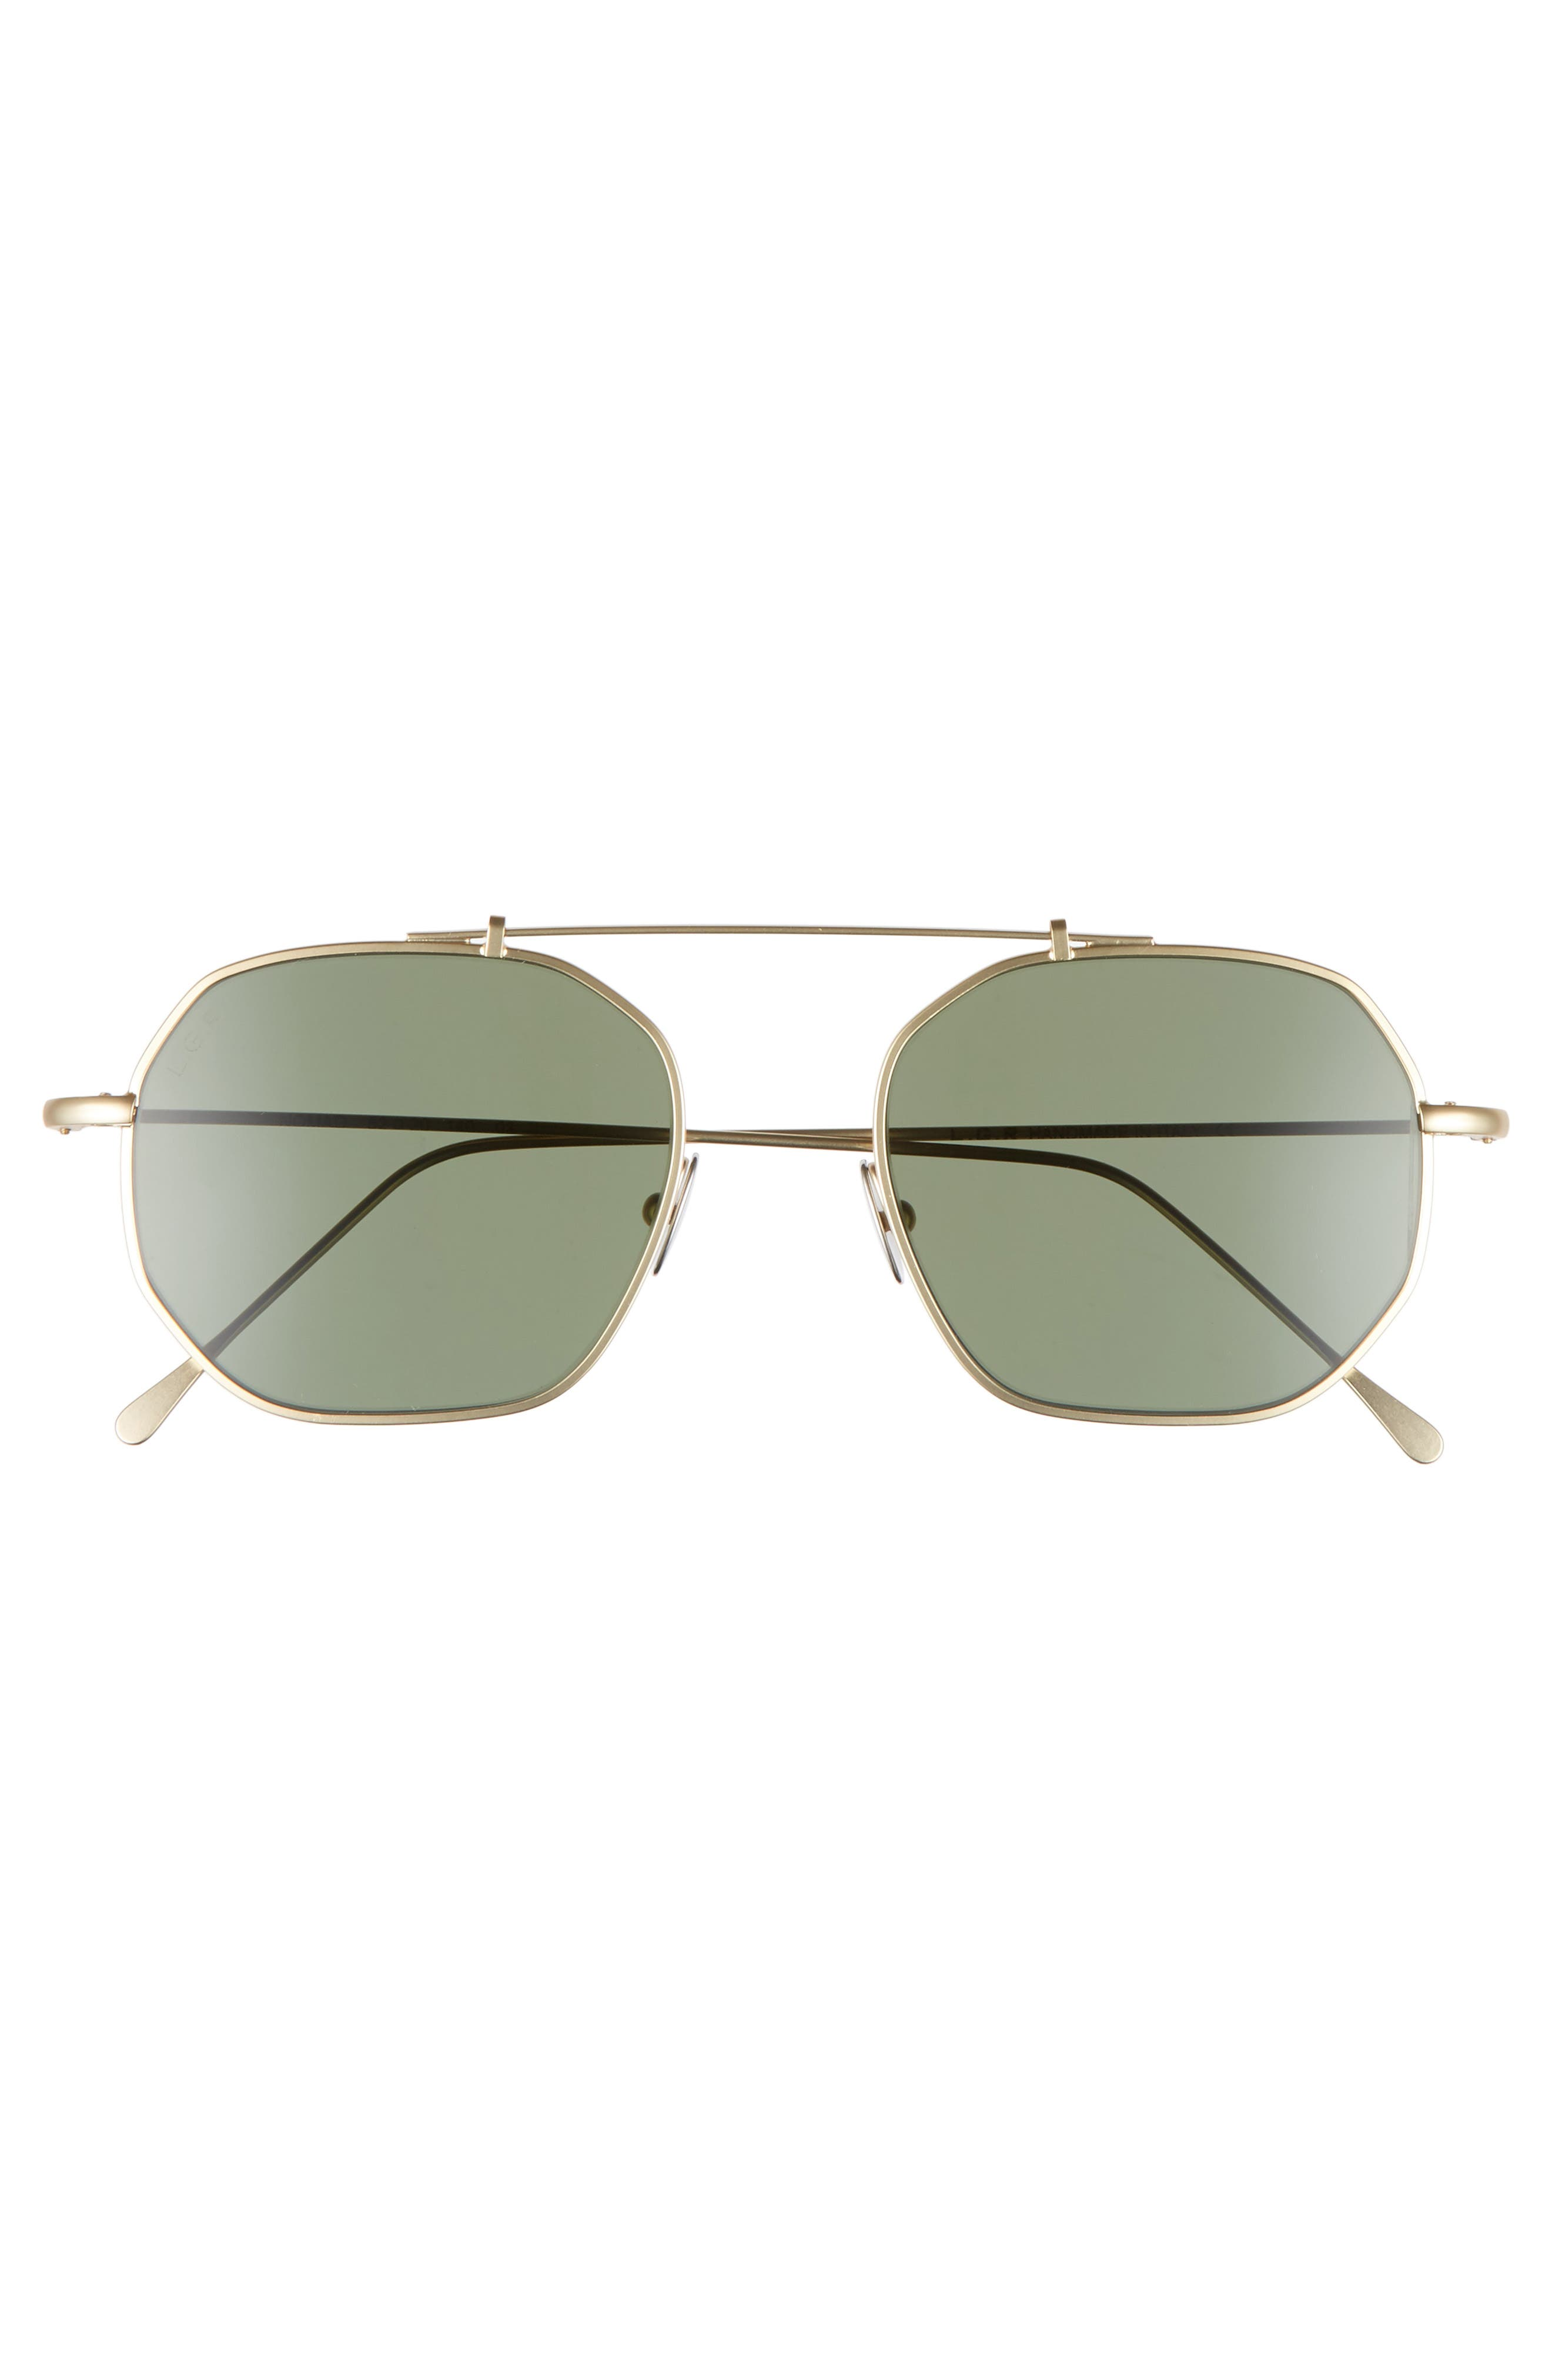 bef9367acc2 L.G.R NOMAD 52MM SUNGLASSES - GOLD MATTE  GREEN